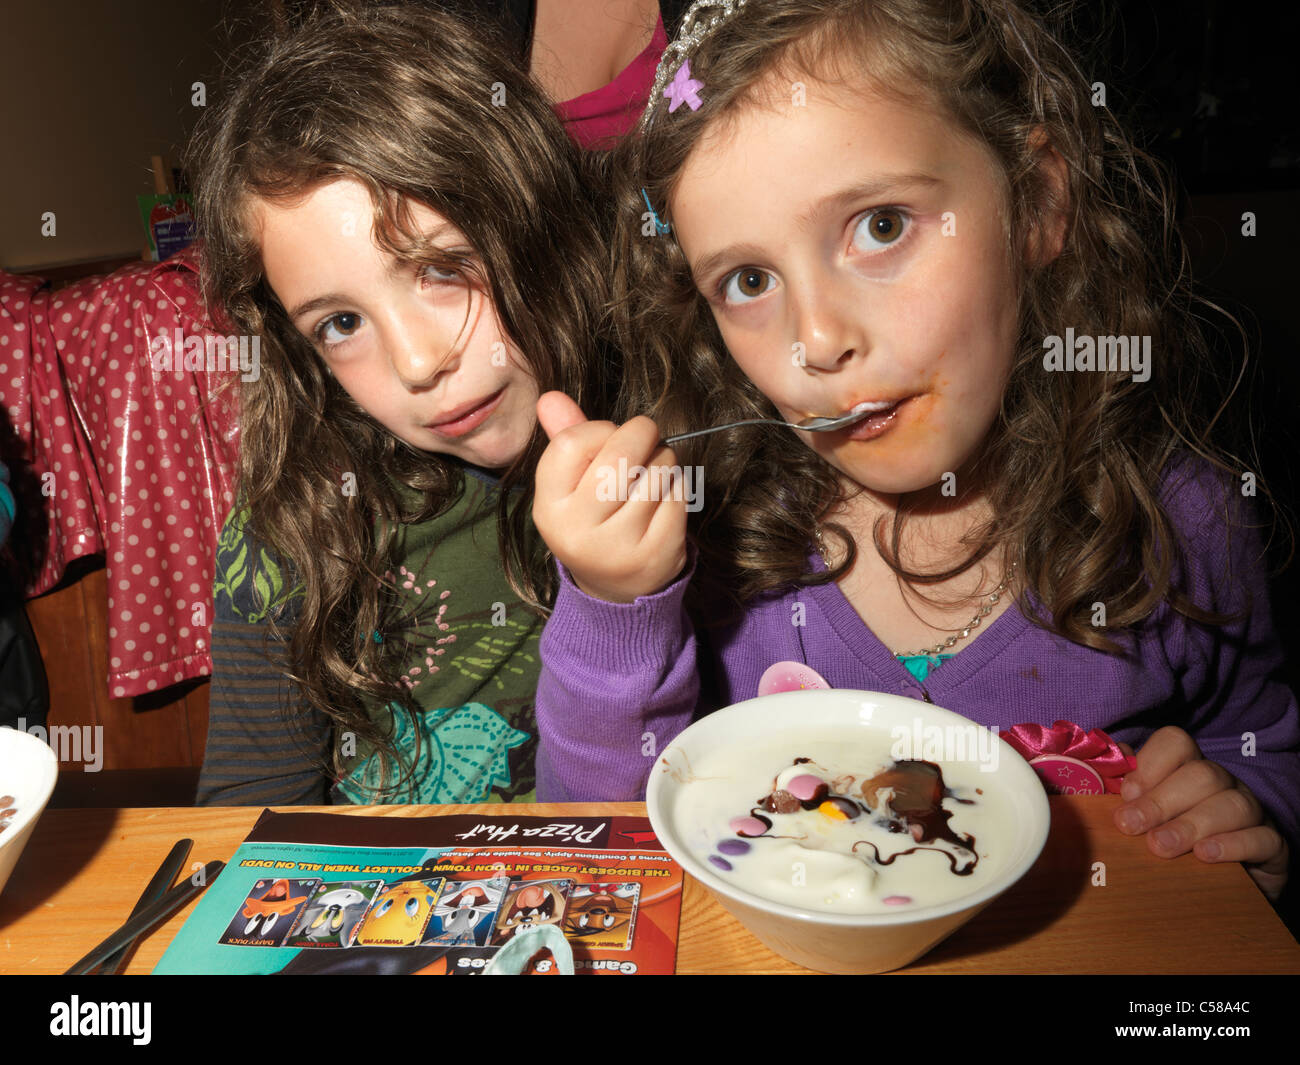 Childrens Birthday Party In Pizza Hut Girl Eating Ice Cream Stock - Childrens birthday parties pizza hut